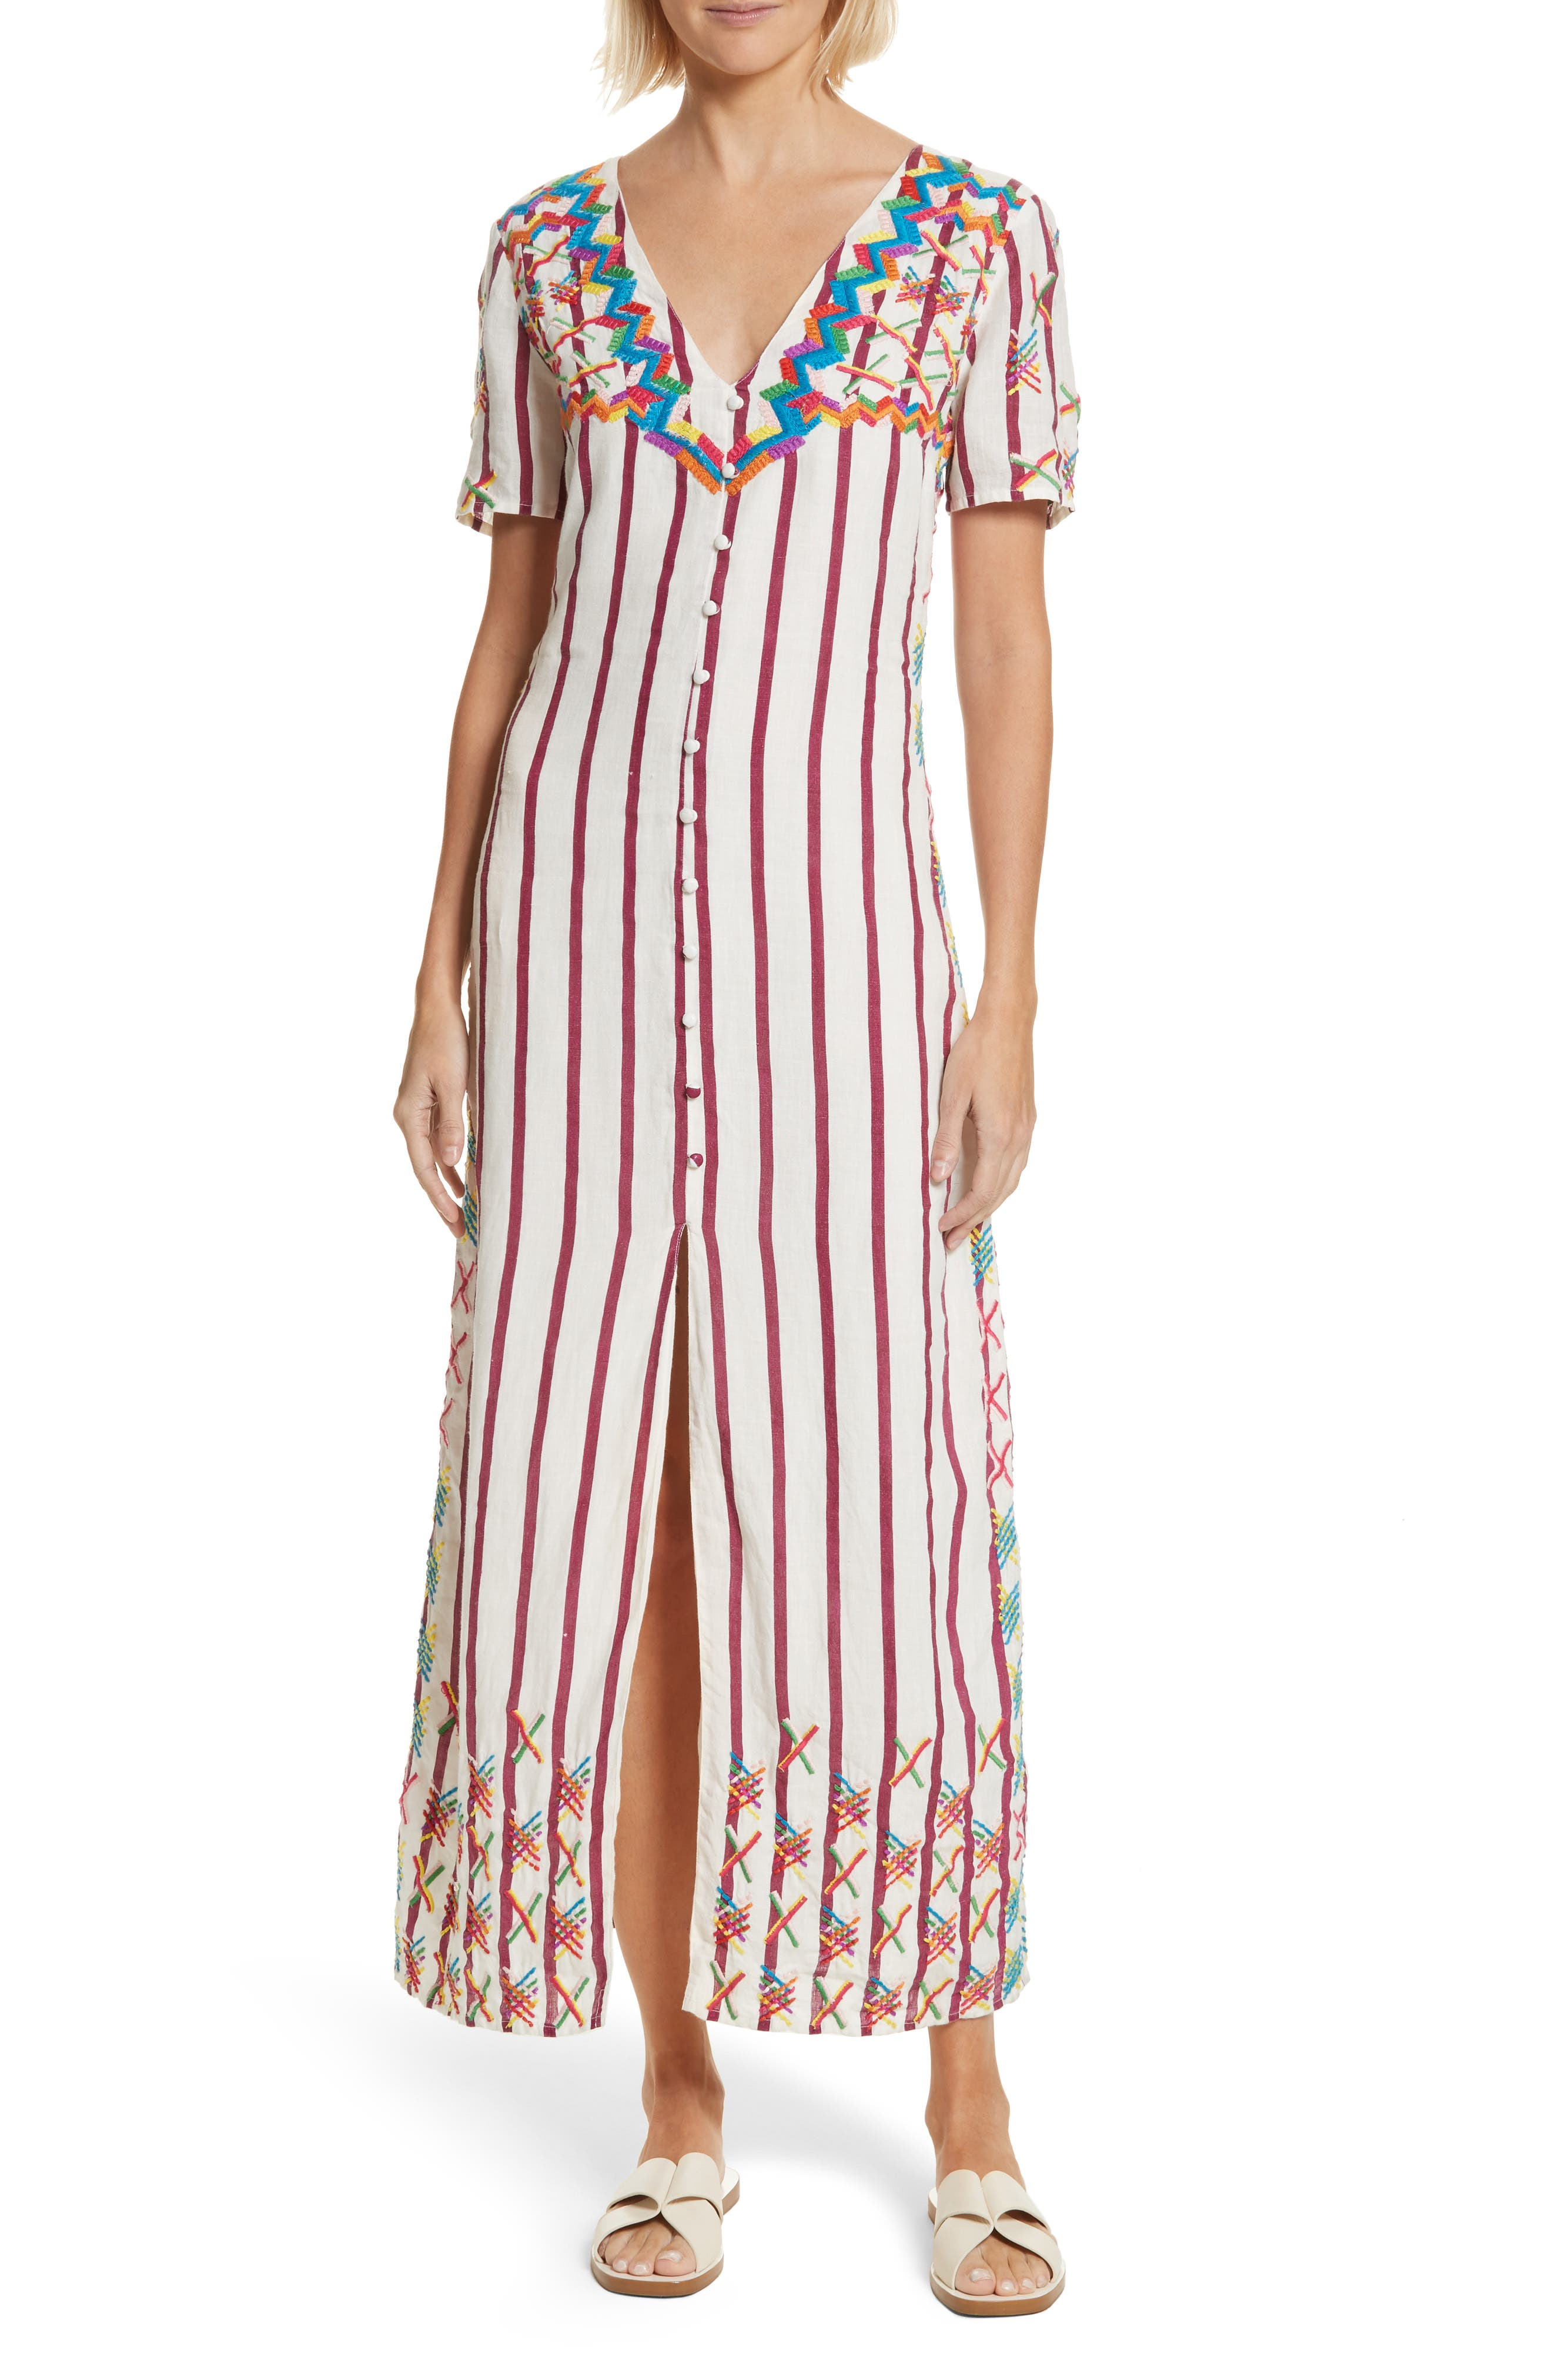 Maria Embroidered Maxi Dress,                         Main,                         color, Off White/ Burgundy